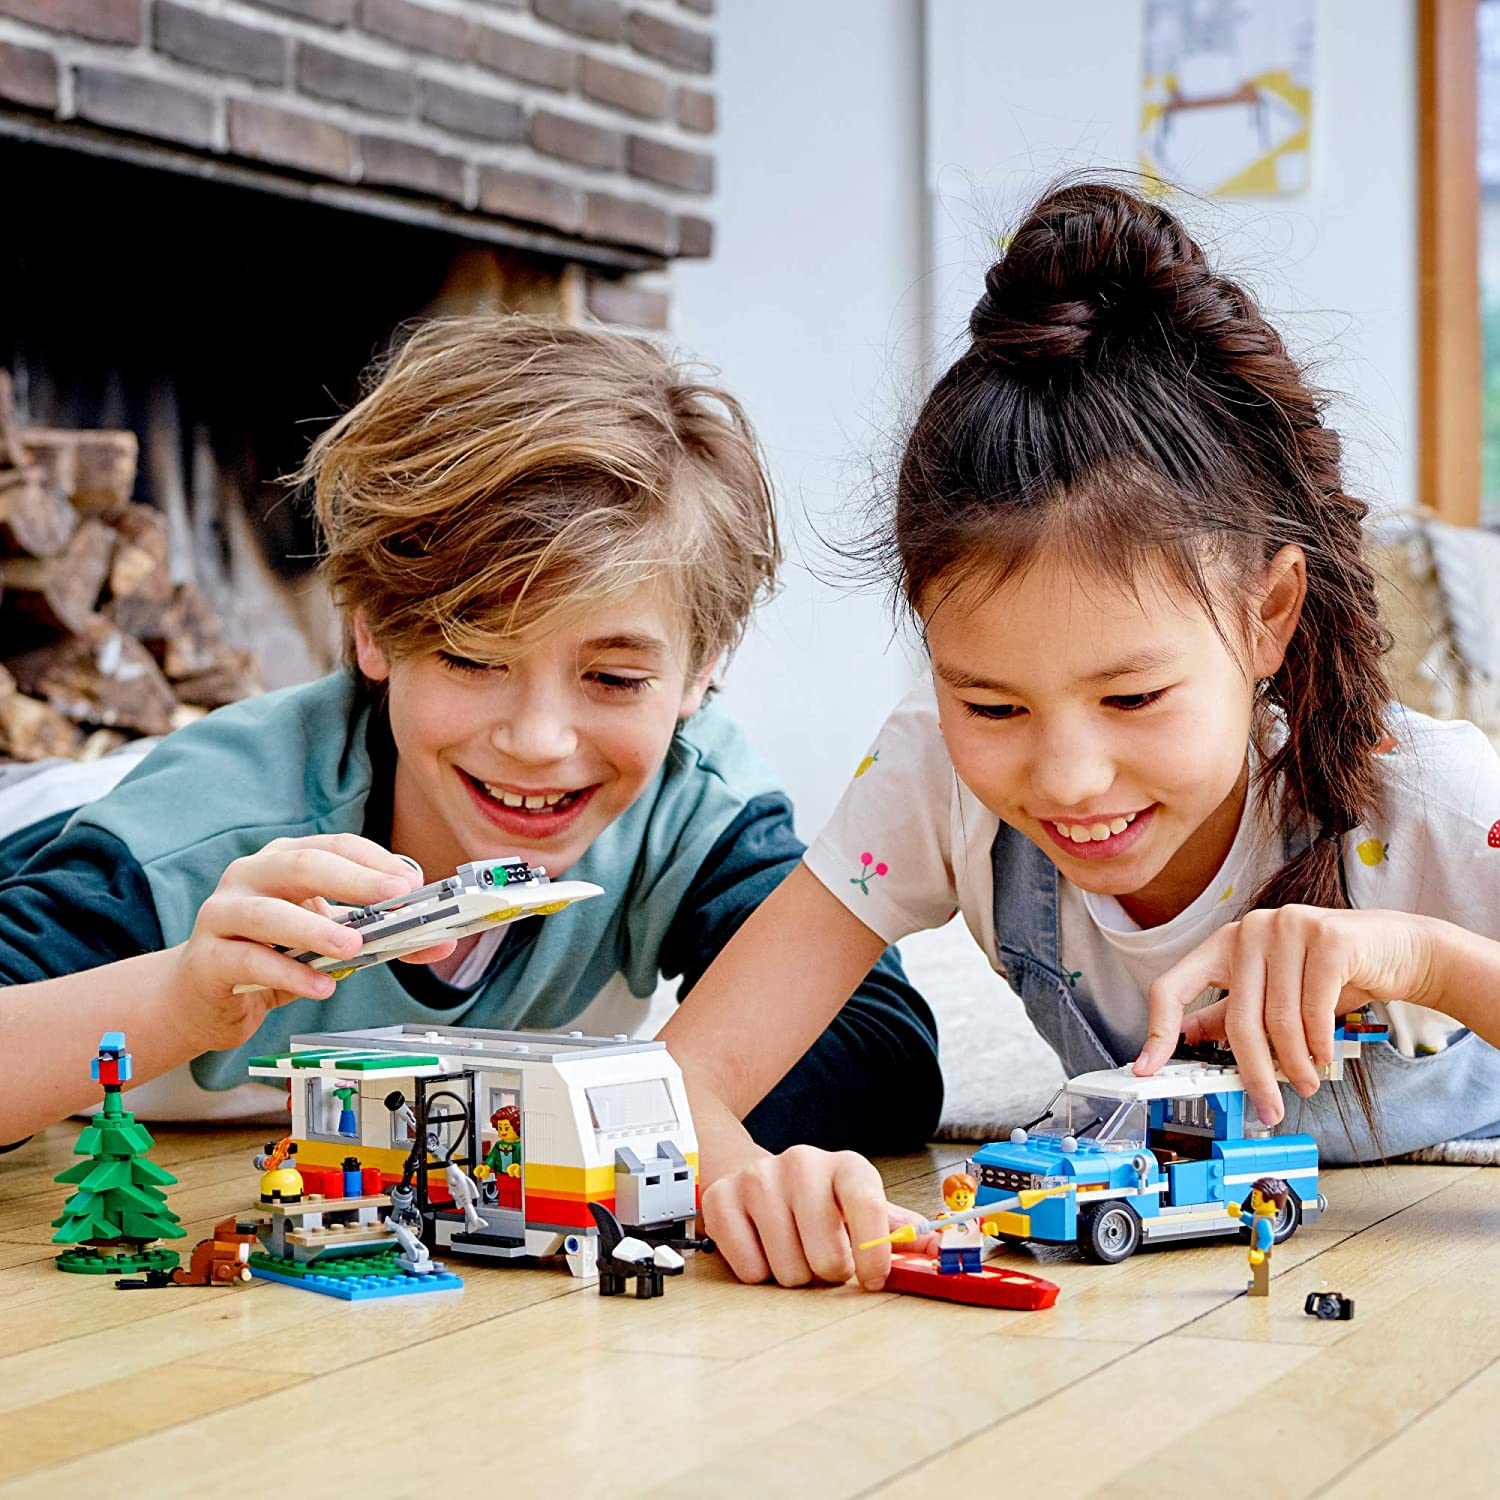 766 Pieces New 2020 LEGO Creator 3in1 Caravan Family Holiday 31108 Vacation Toy Building Kit for Kids Who Love Creative Play and Camping Adventure Playsets with Cute Animal Figures